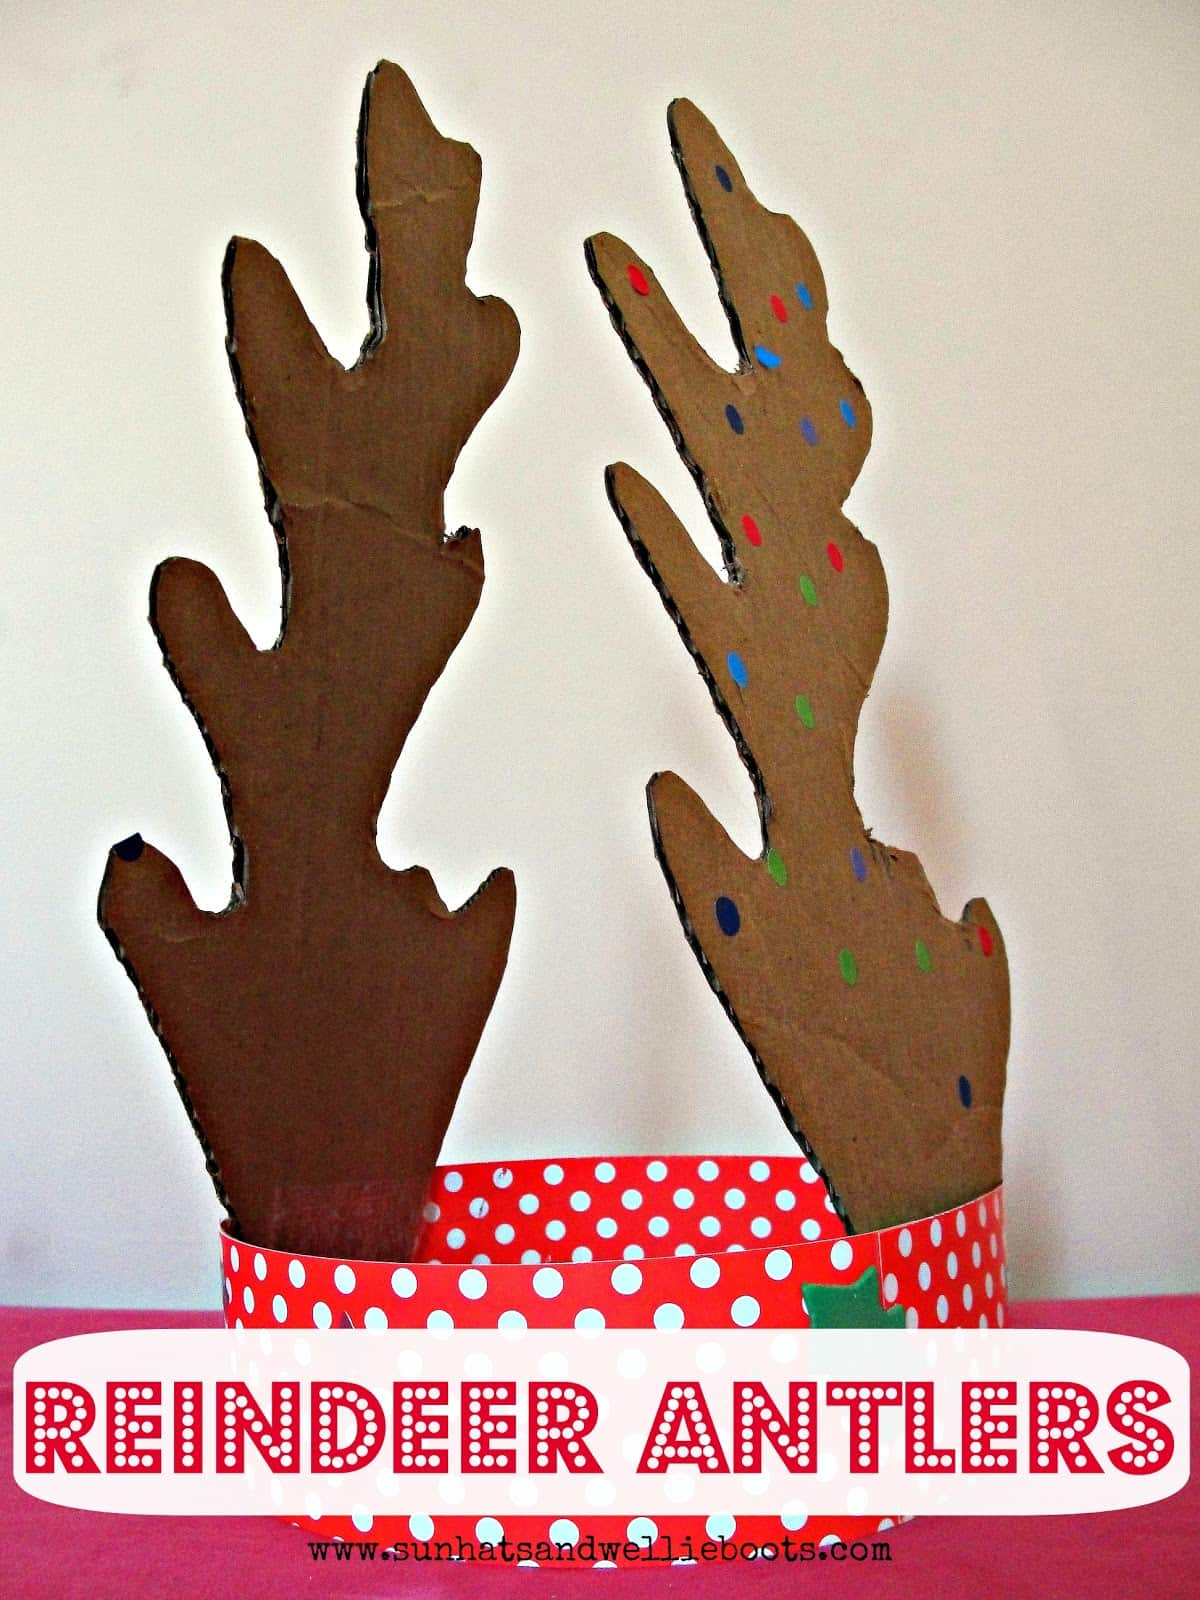 Cardboard reindeer dress up antlers